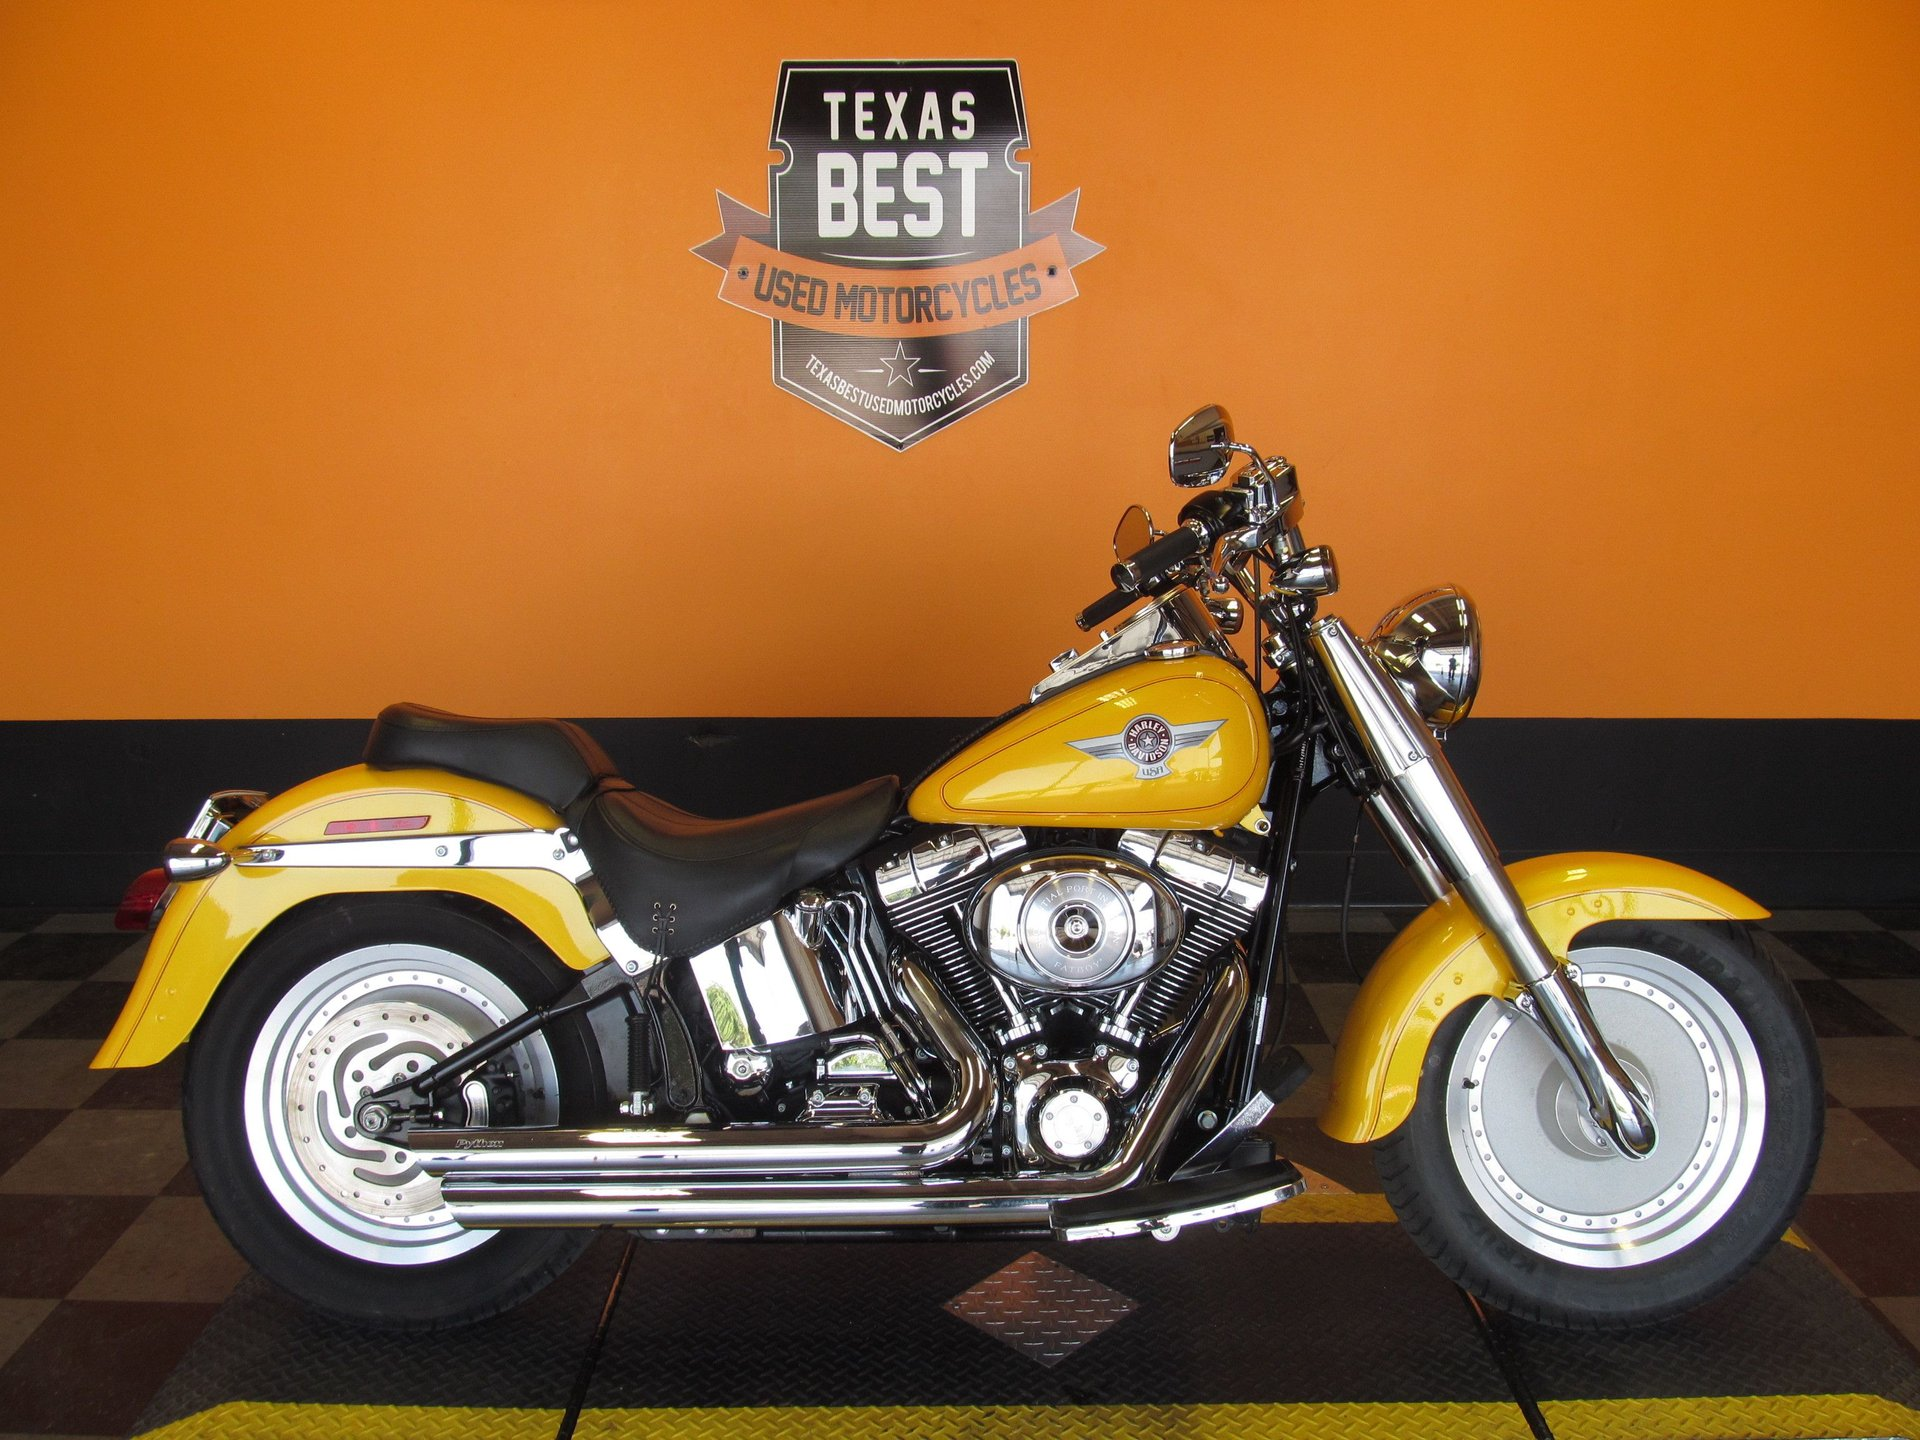 2006 harley davidson softail fat boy flstfi